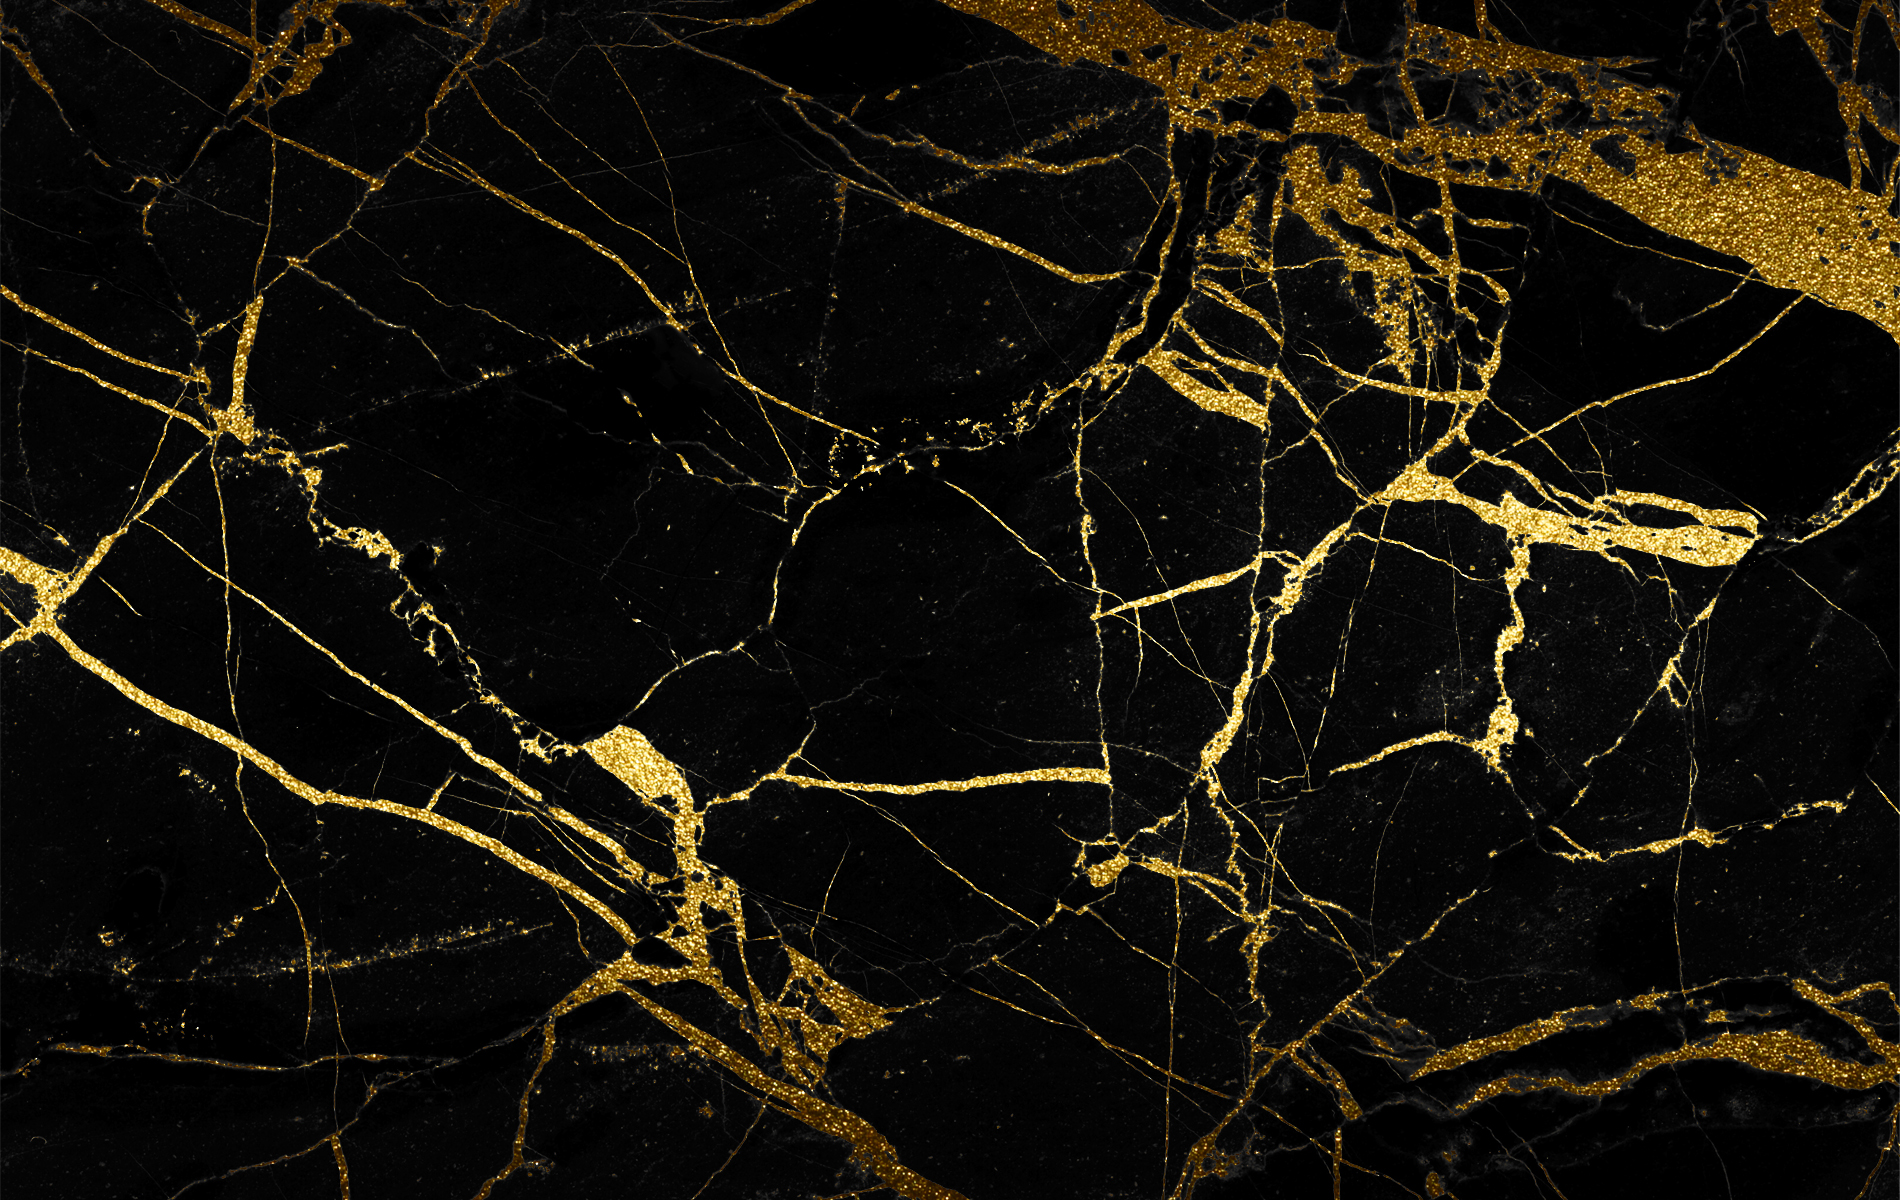 black and gold wallpaper iphone 22 background